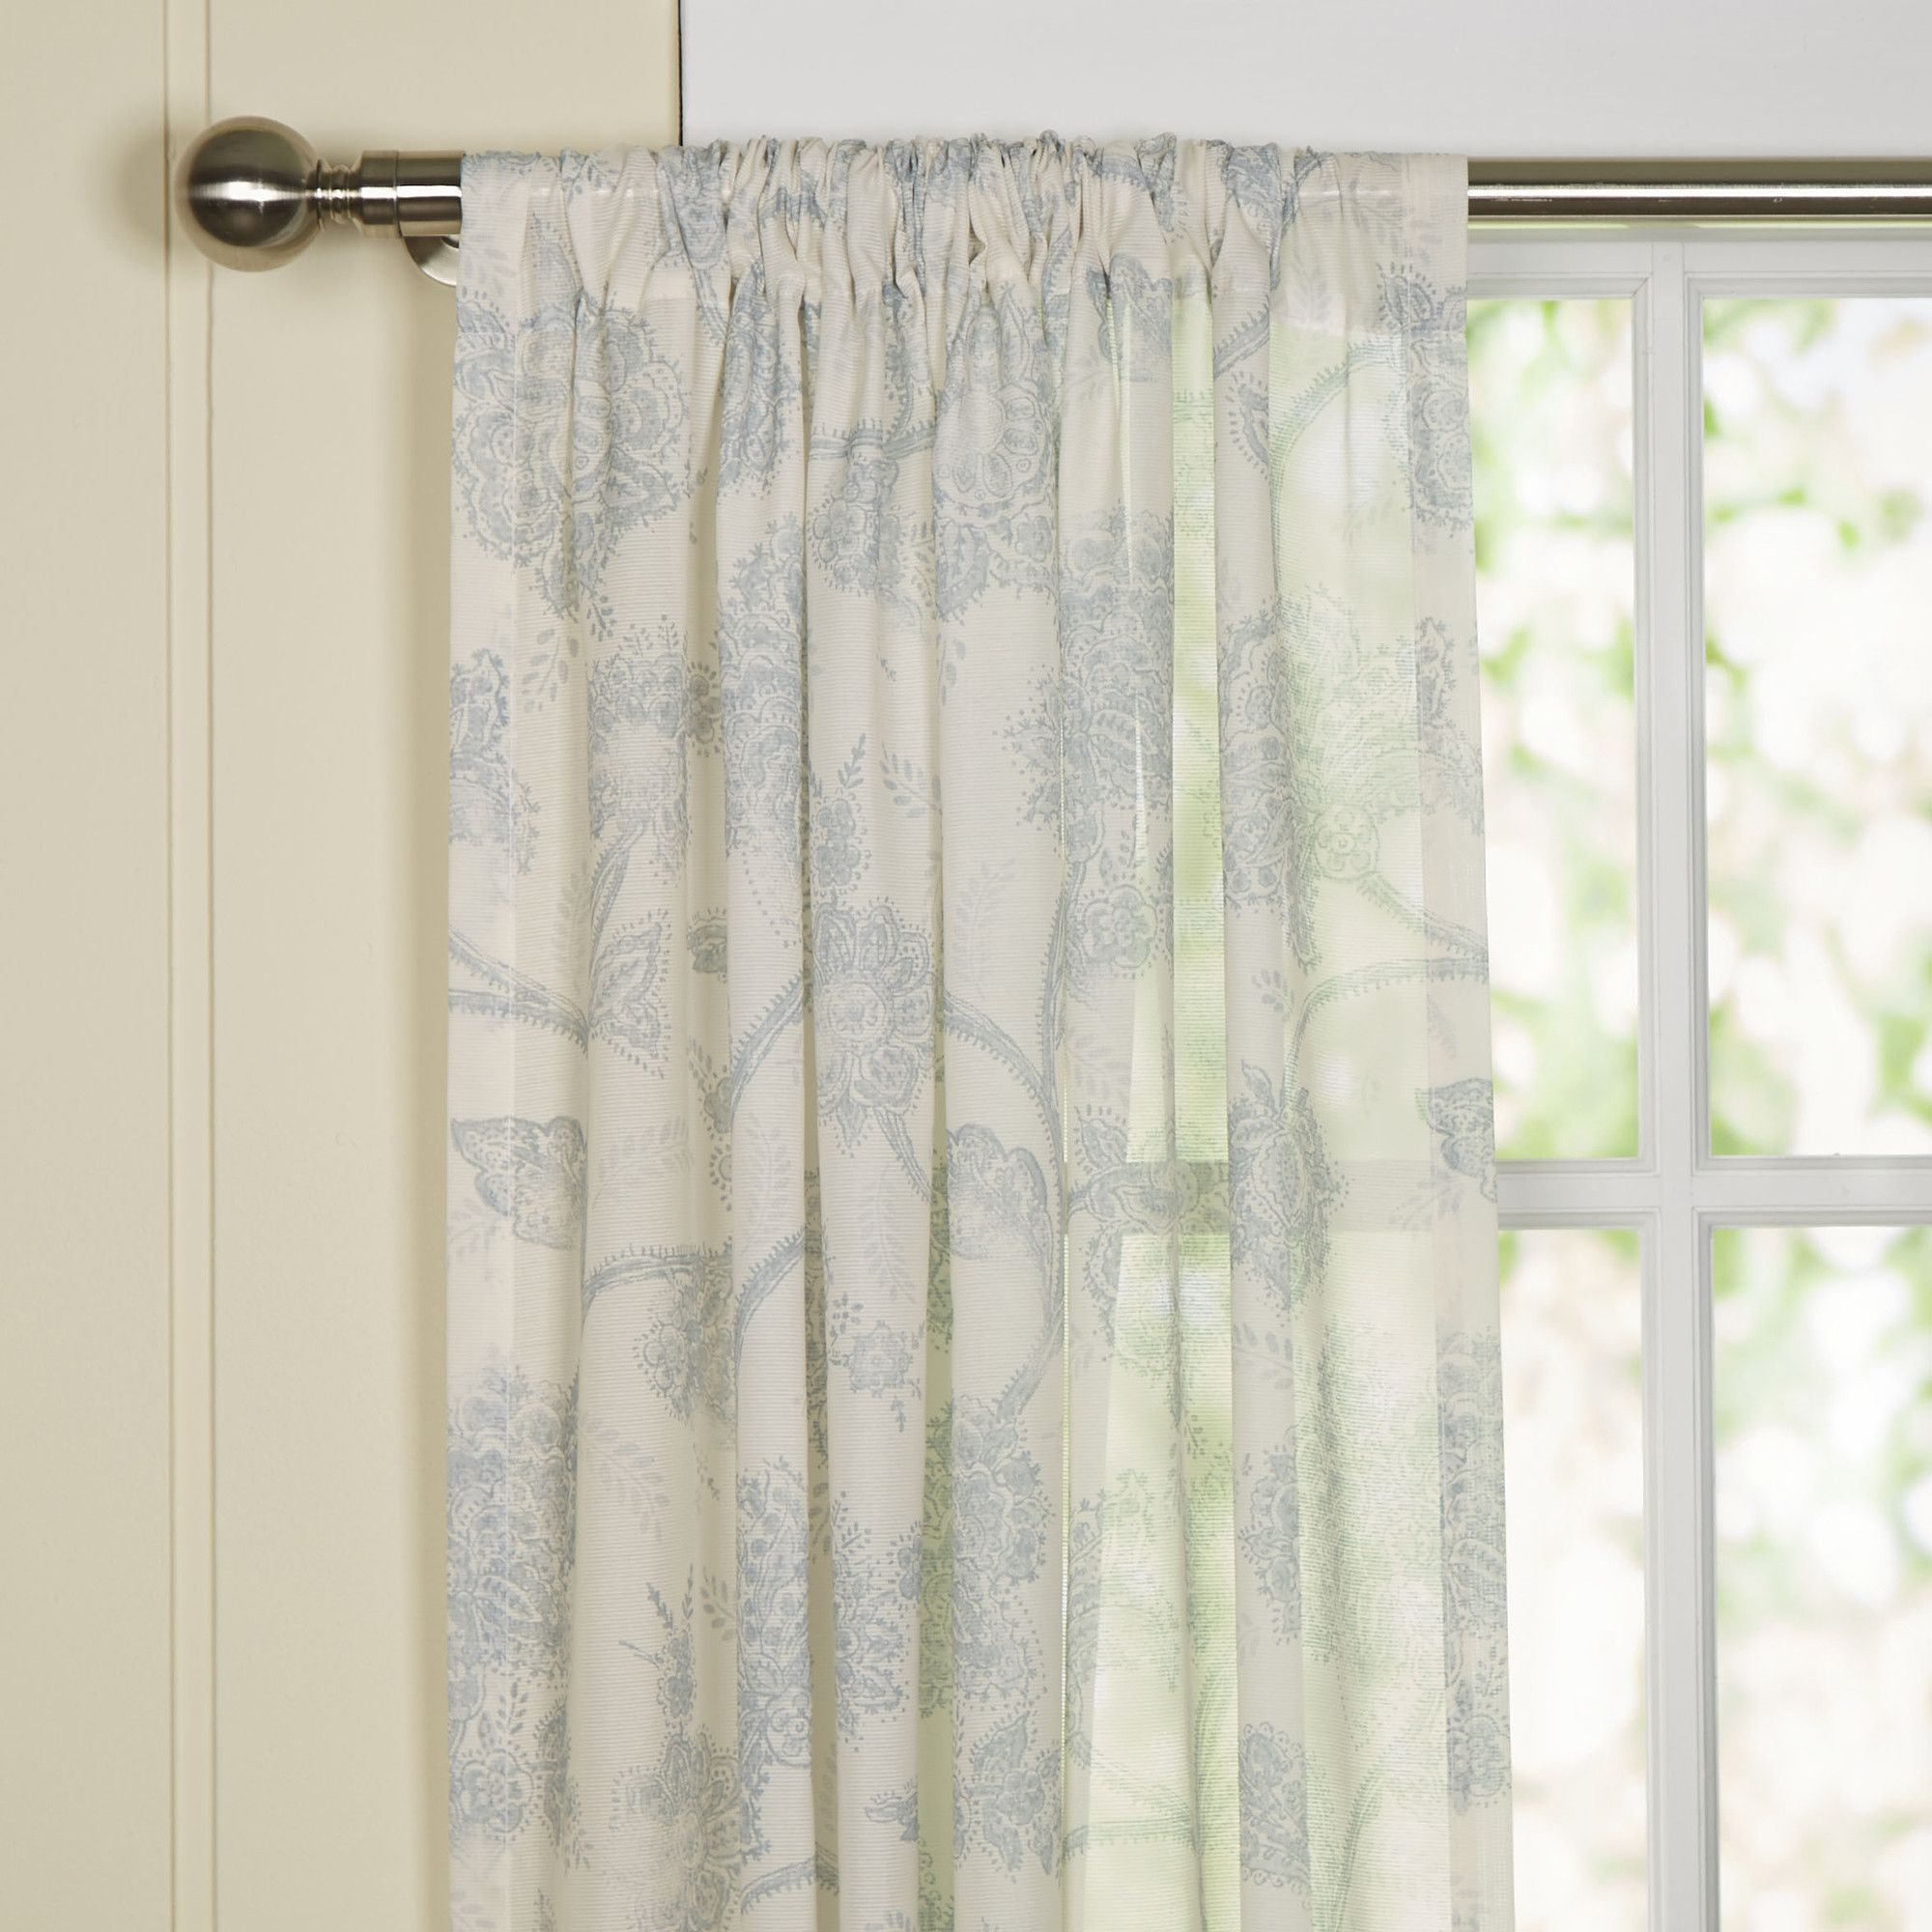 curtains rustic style blackout curtain uncategorized red thermabacktm sxs for image kendall panels unbelievable and trend